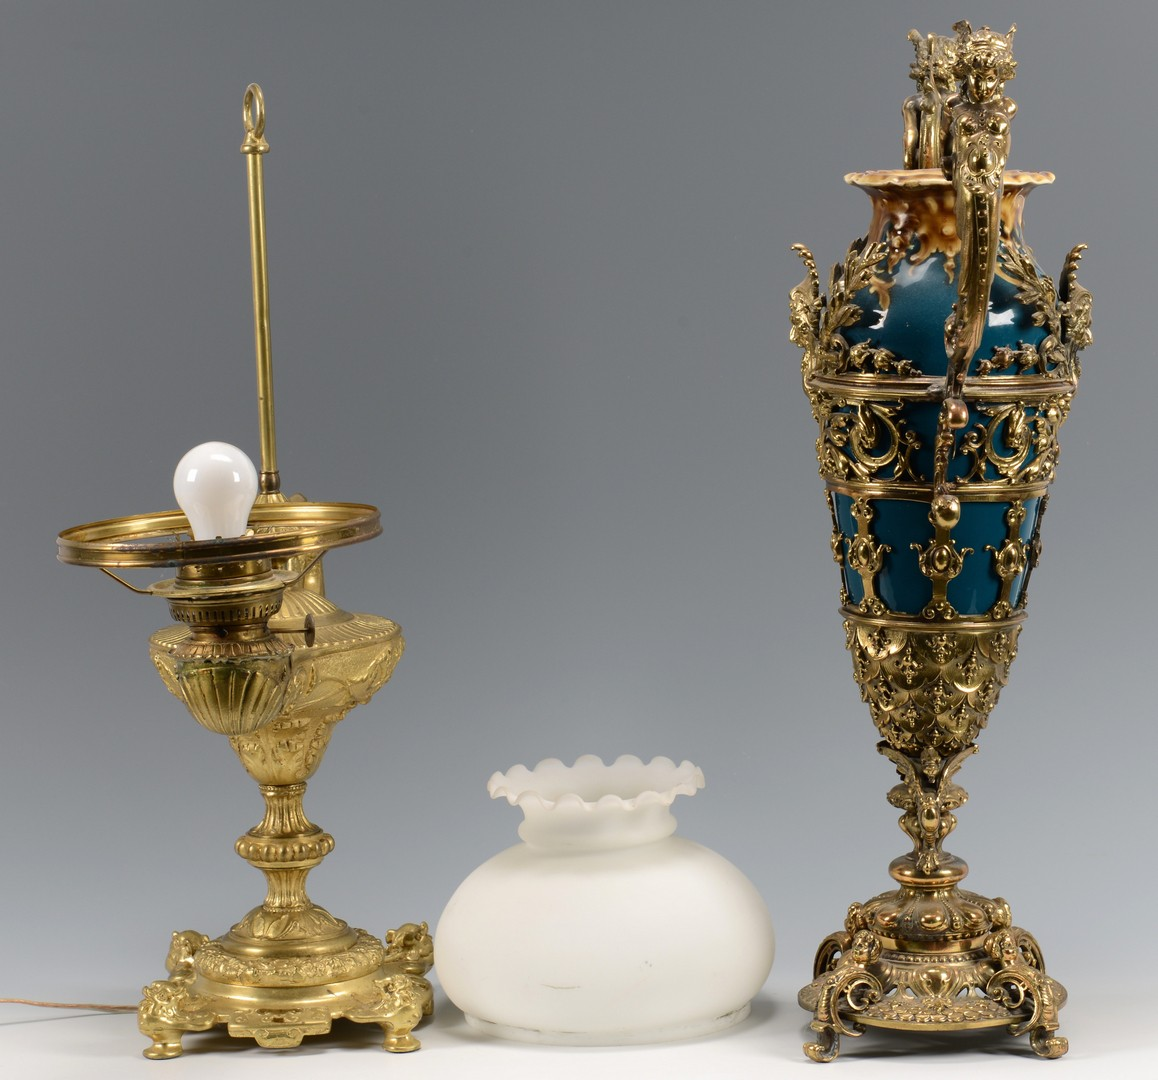 Lot 448: Bronze Genie lamp and mounted vase